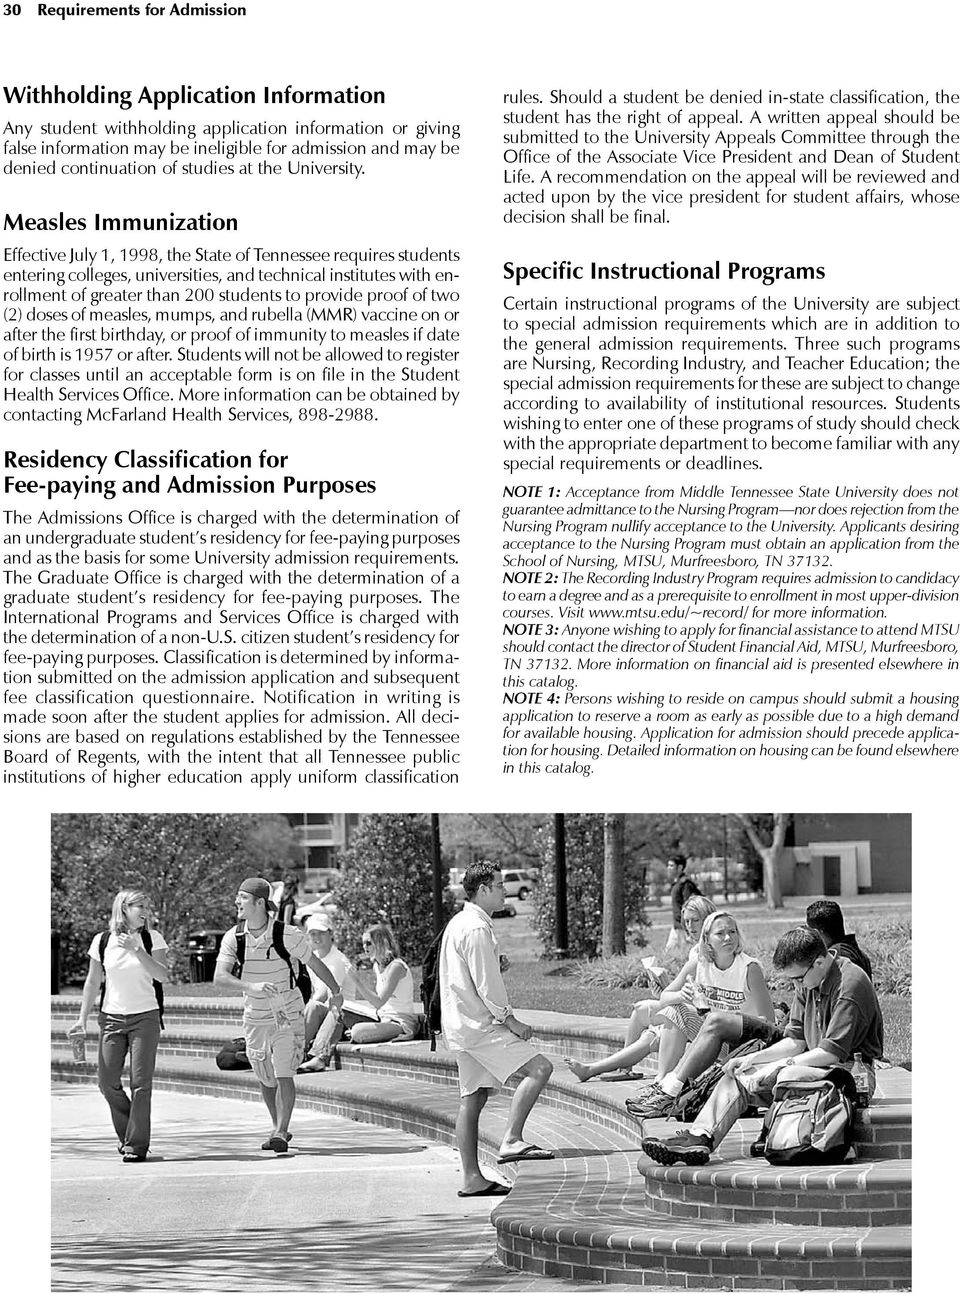 Measles Immunization Effective July 1, 1998, the State of Tennessee requires students entering colleges, universities, and technical institutes with enrollment of greater than 200 students to provide